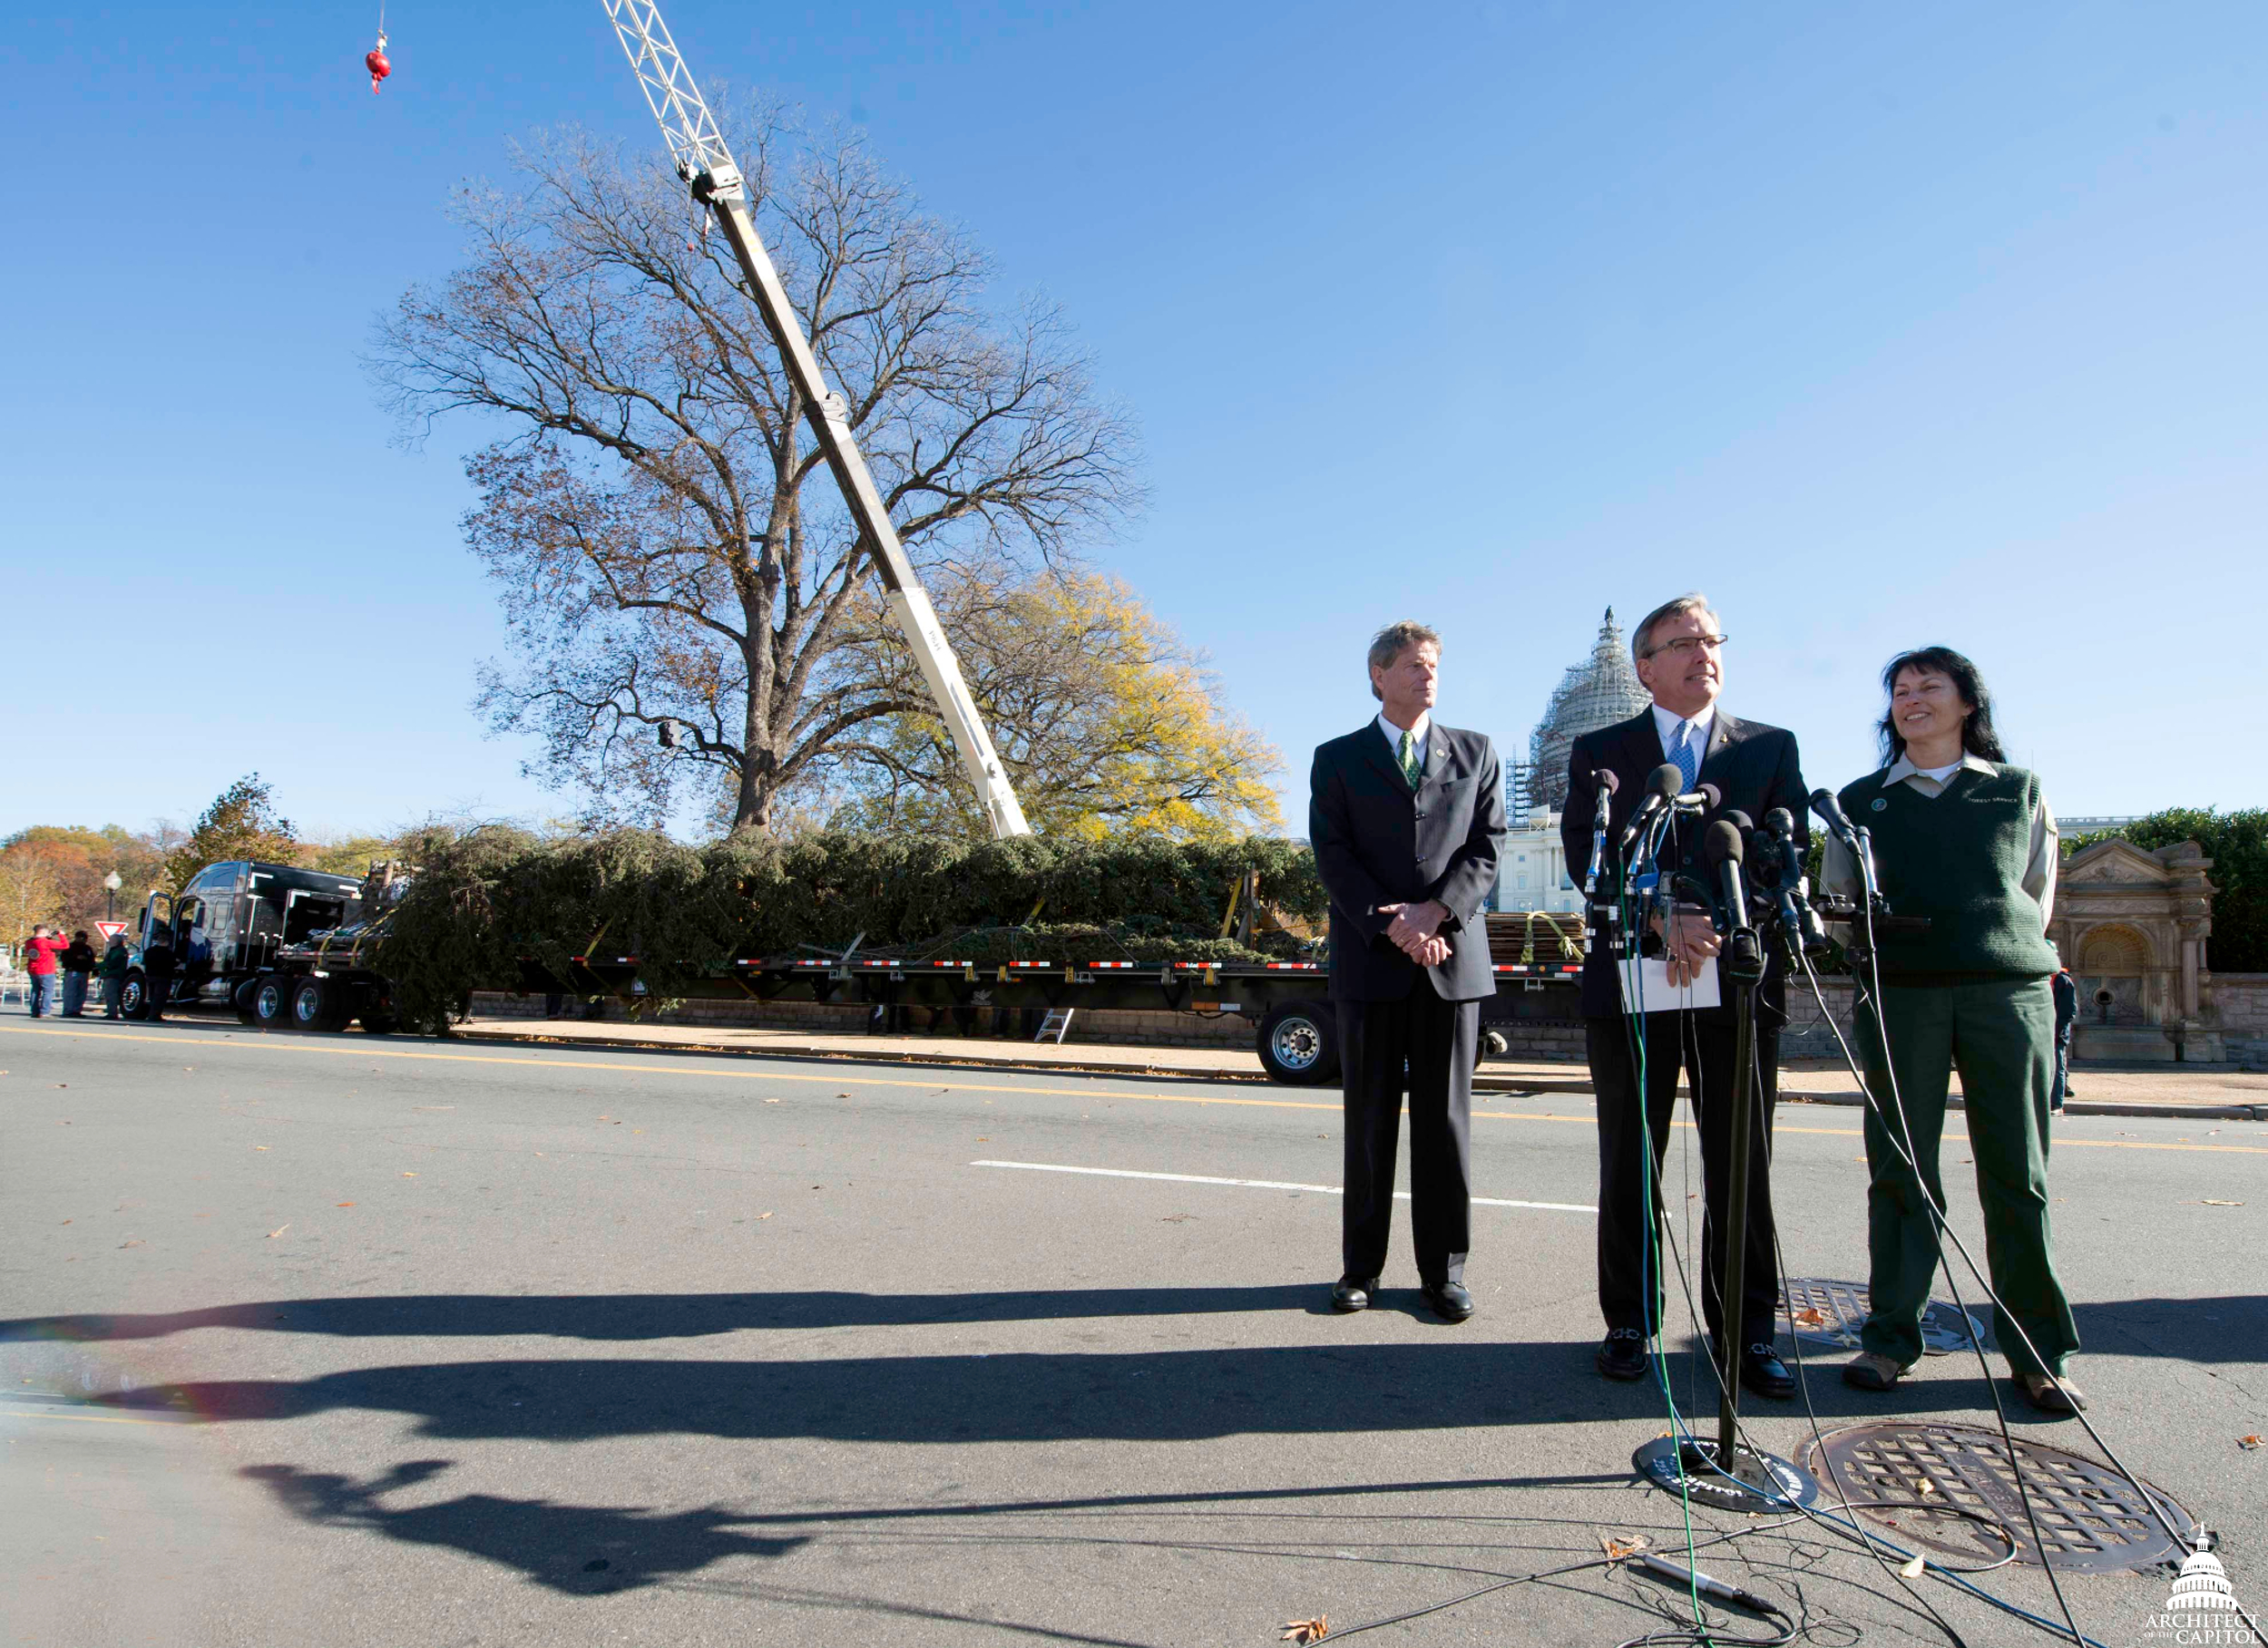 Stephen T. Ayers, Architect of the Capitol, welcomes the Capitol Christmas tree to the West Front Lawn.